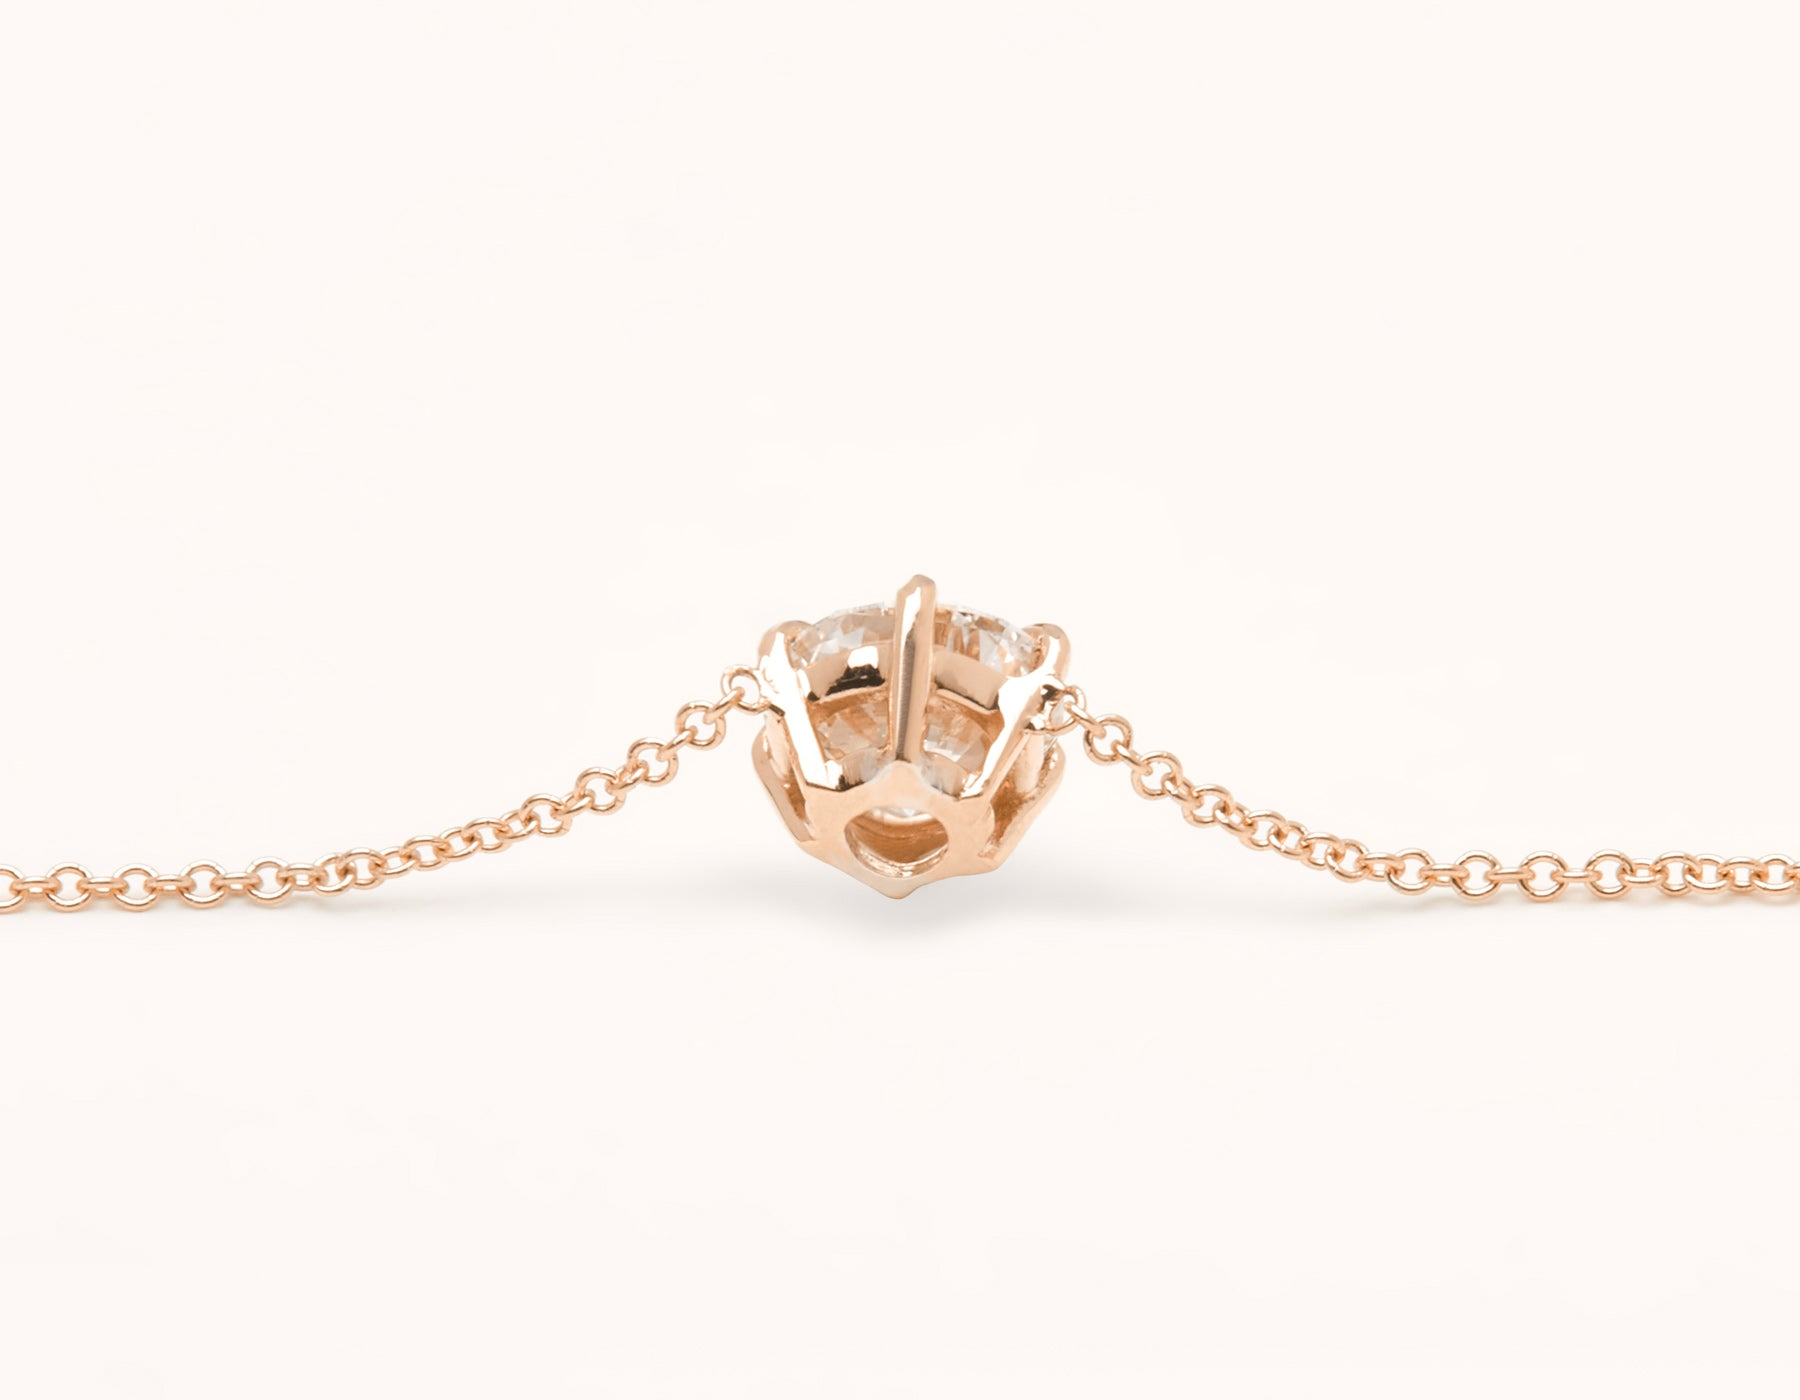 Simple modern 18k solid gold 1.0 ct Round Brilliant Diamond Necklace 6 prong setting on thin chain with lobster clasp Vrai and Oro, 18K Rose Gold